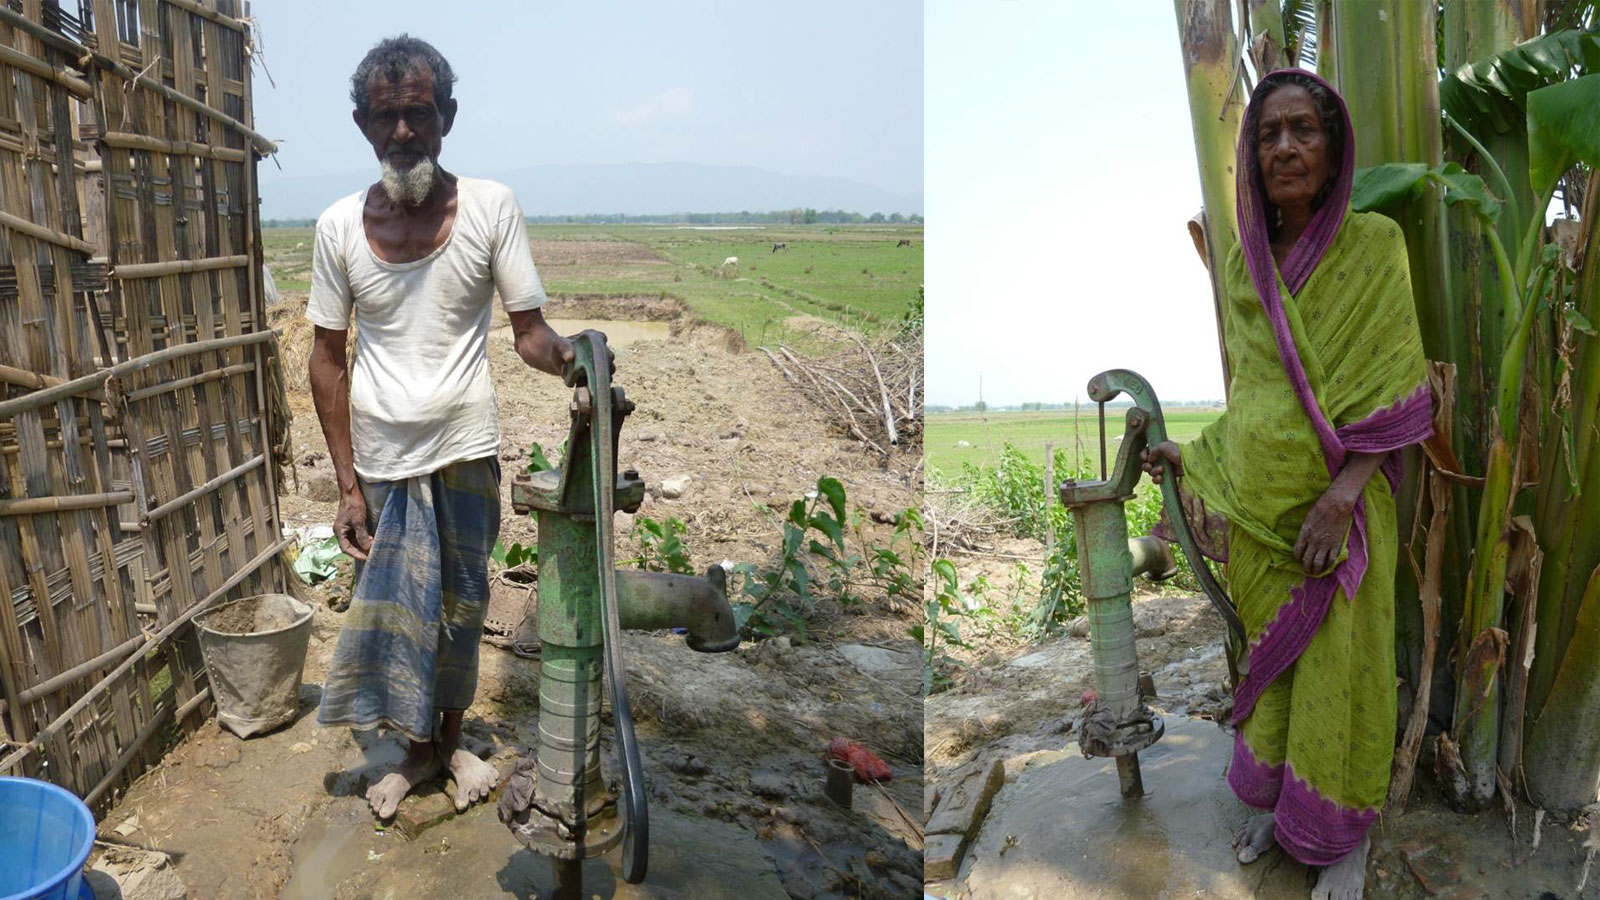 Hand-pumps for drinking water (Assam, India)